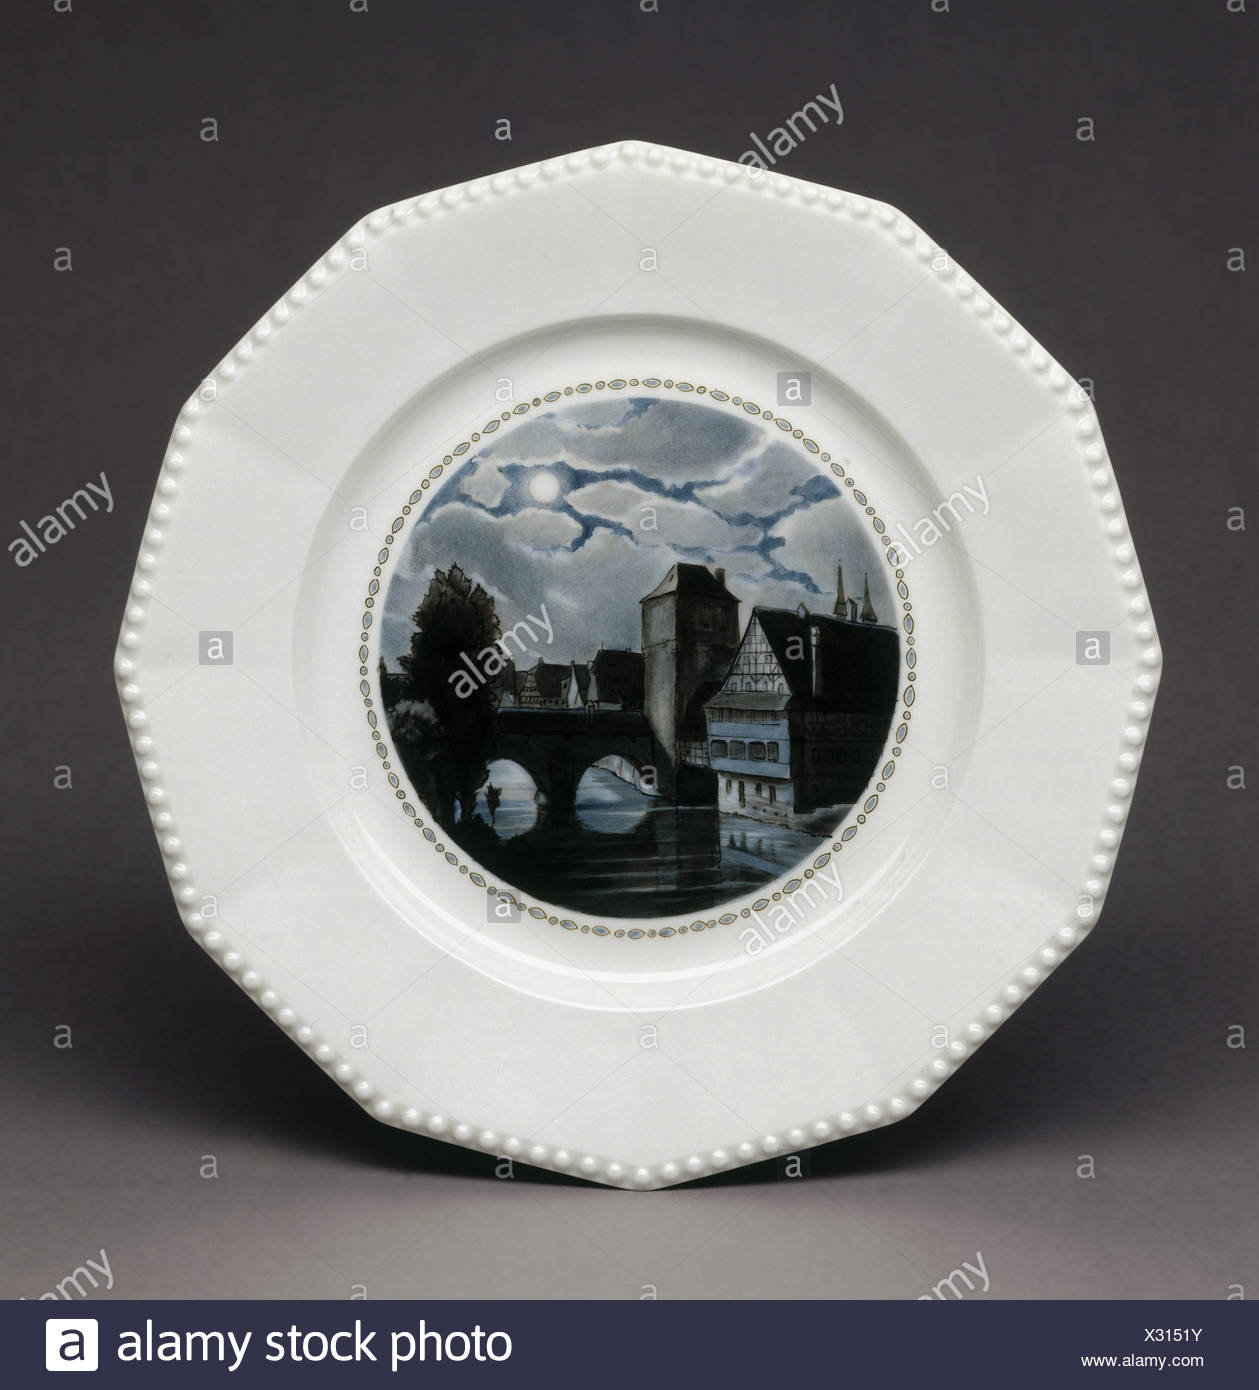 fine arts, porcelain, Nymphenburg porcelain, plate 'Perl' with 'Henkersteg at Night', 1926, design: Rudolf Sieck (decor), realisation: Rudolf Diewock, - Stock Image